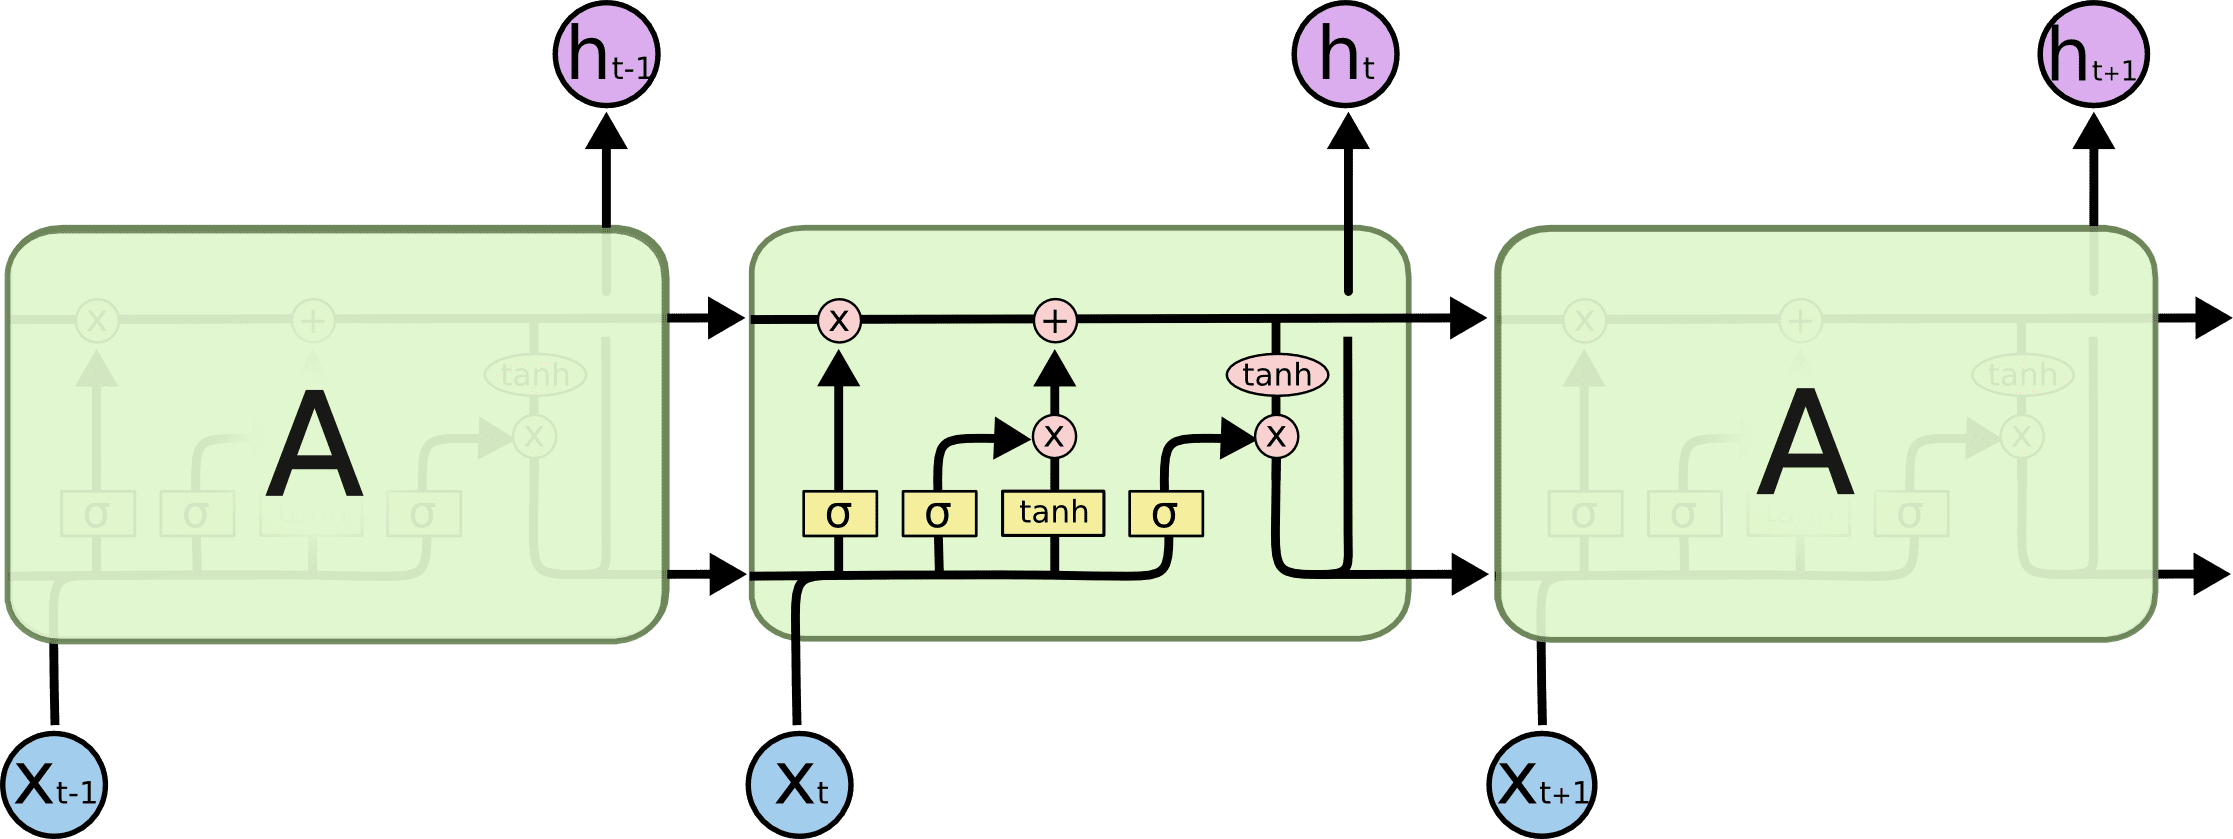 Overview of Recurrent Neural Networks And Their Applications